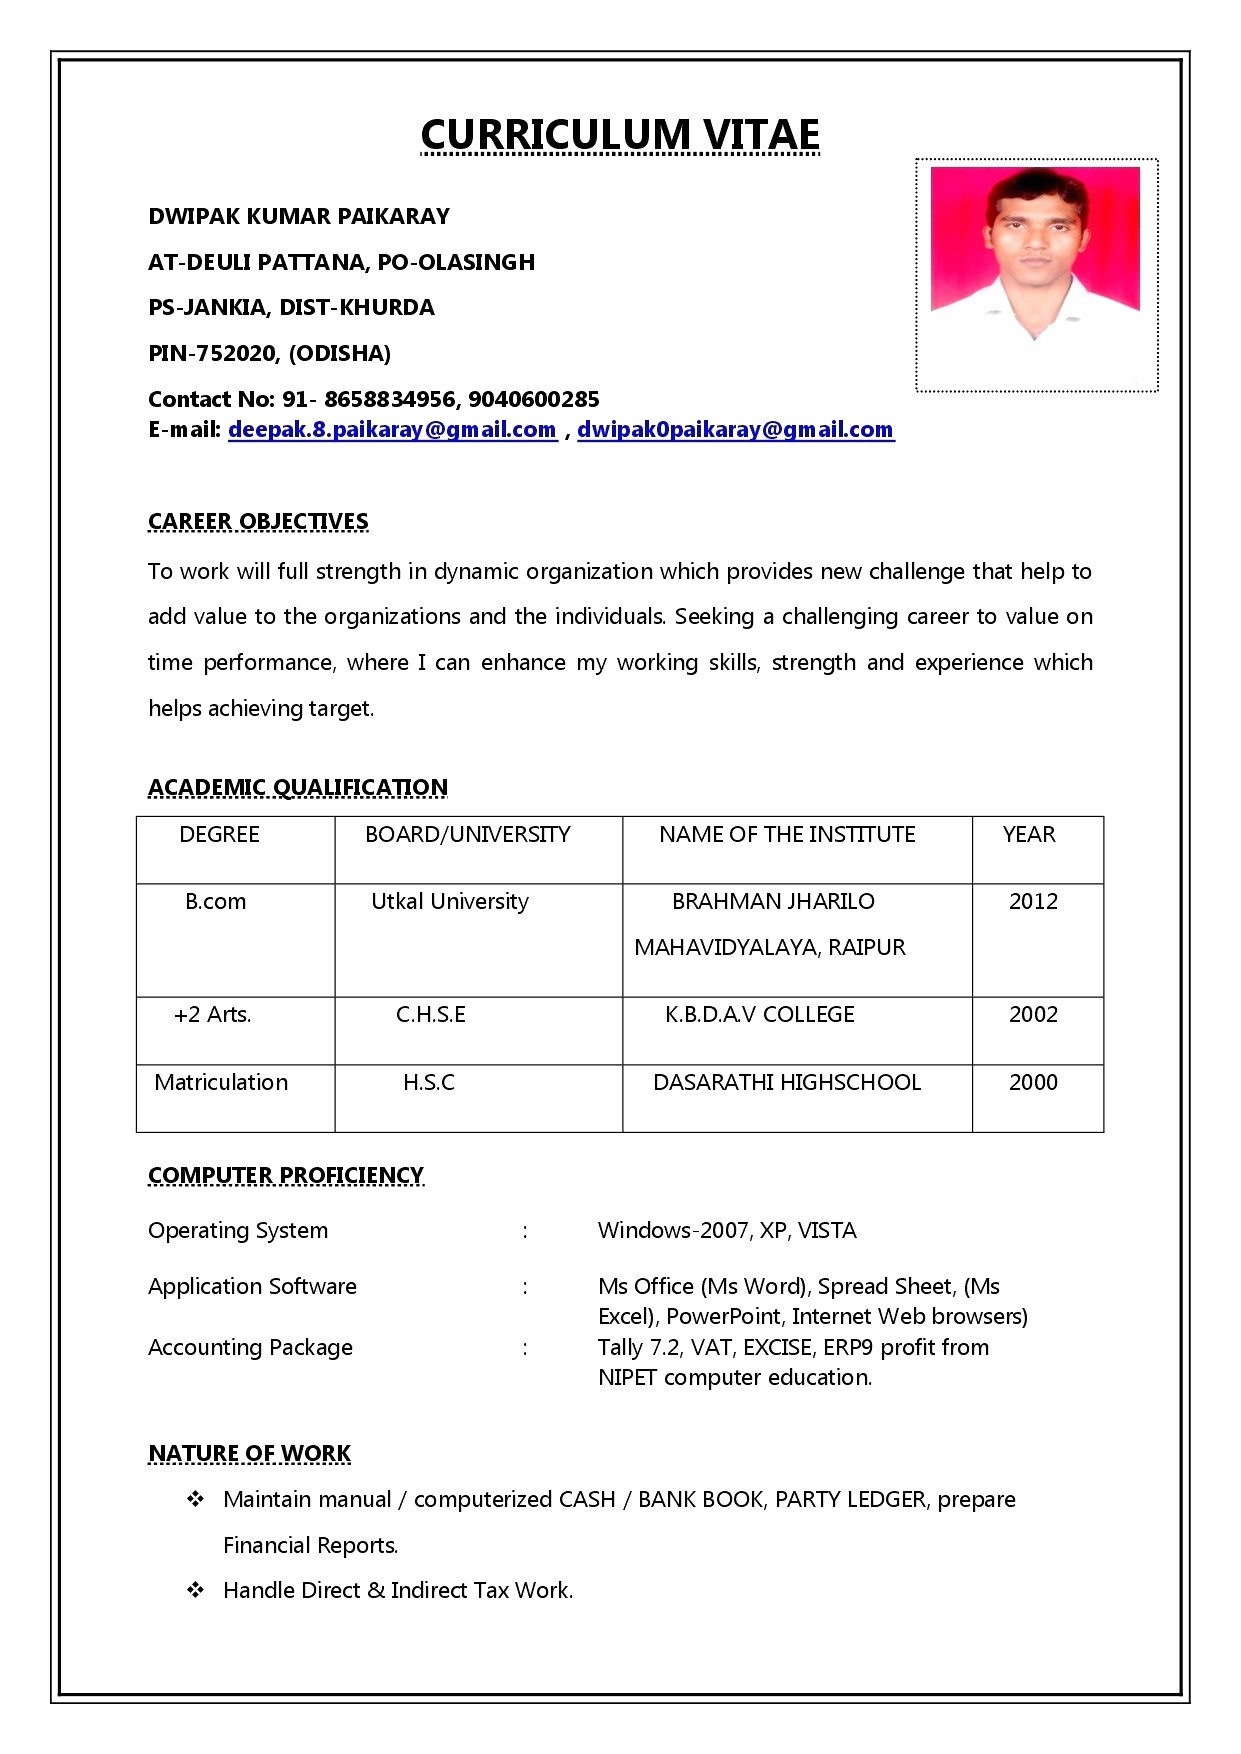 13 resume opening statements examples collection